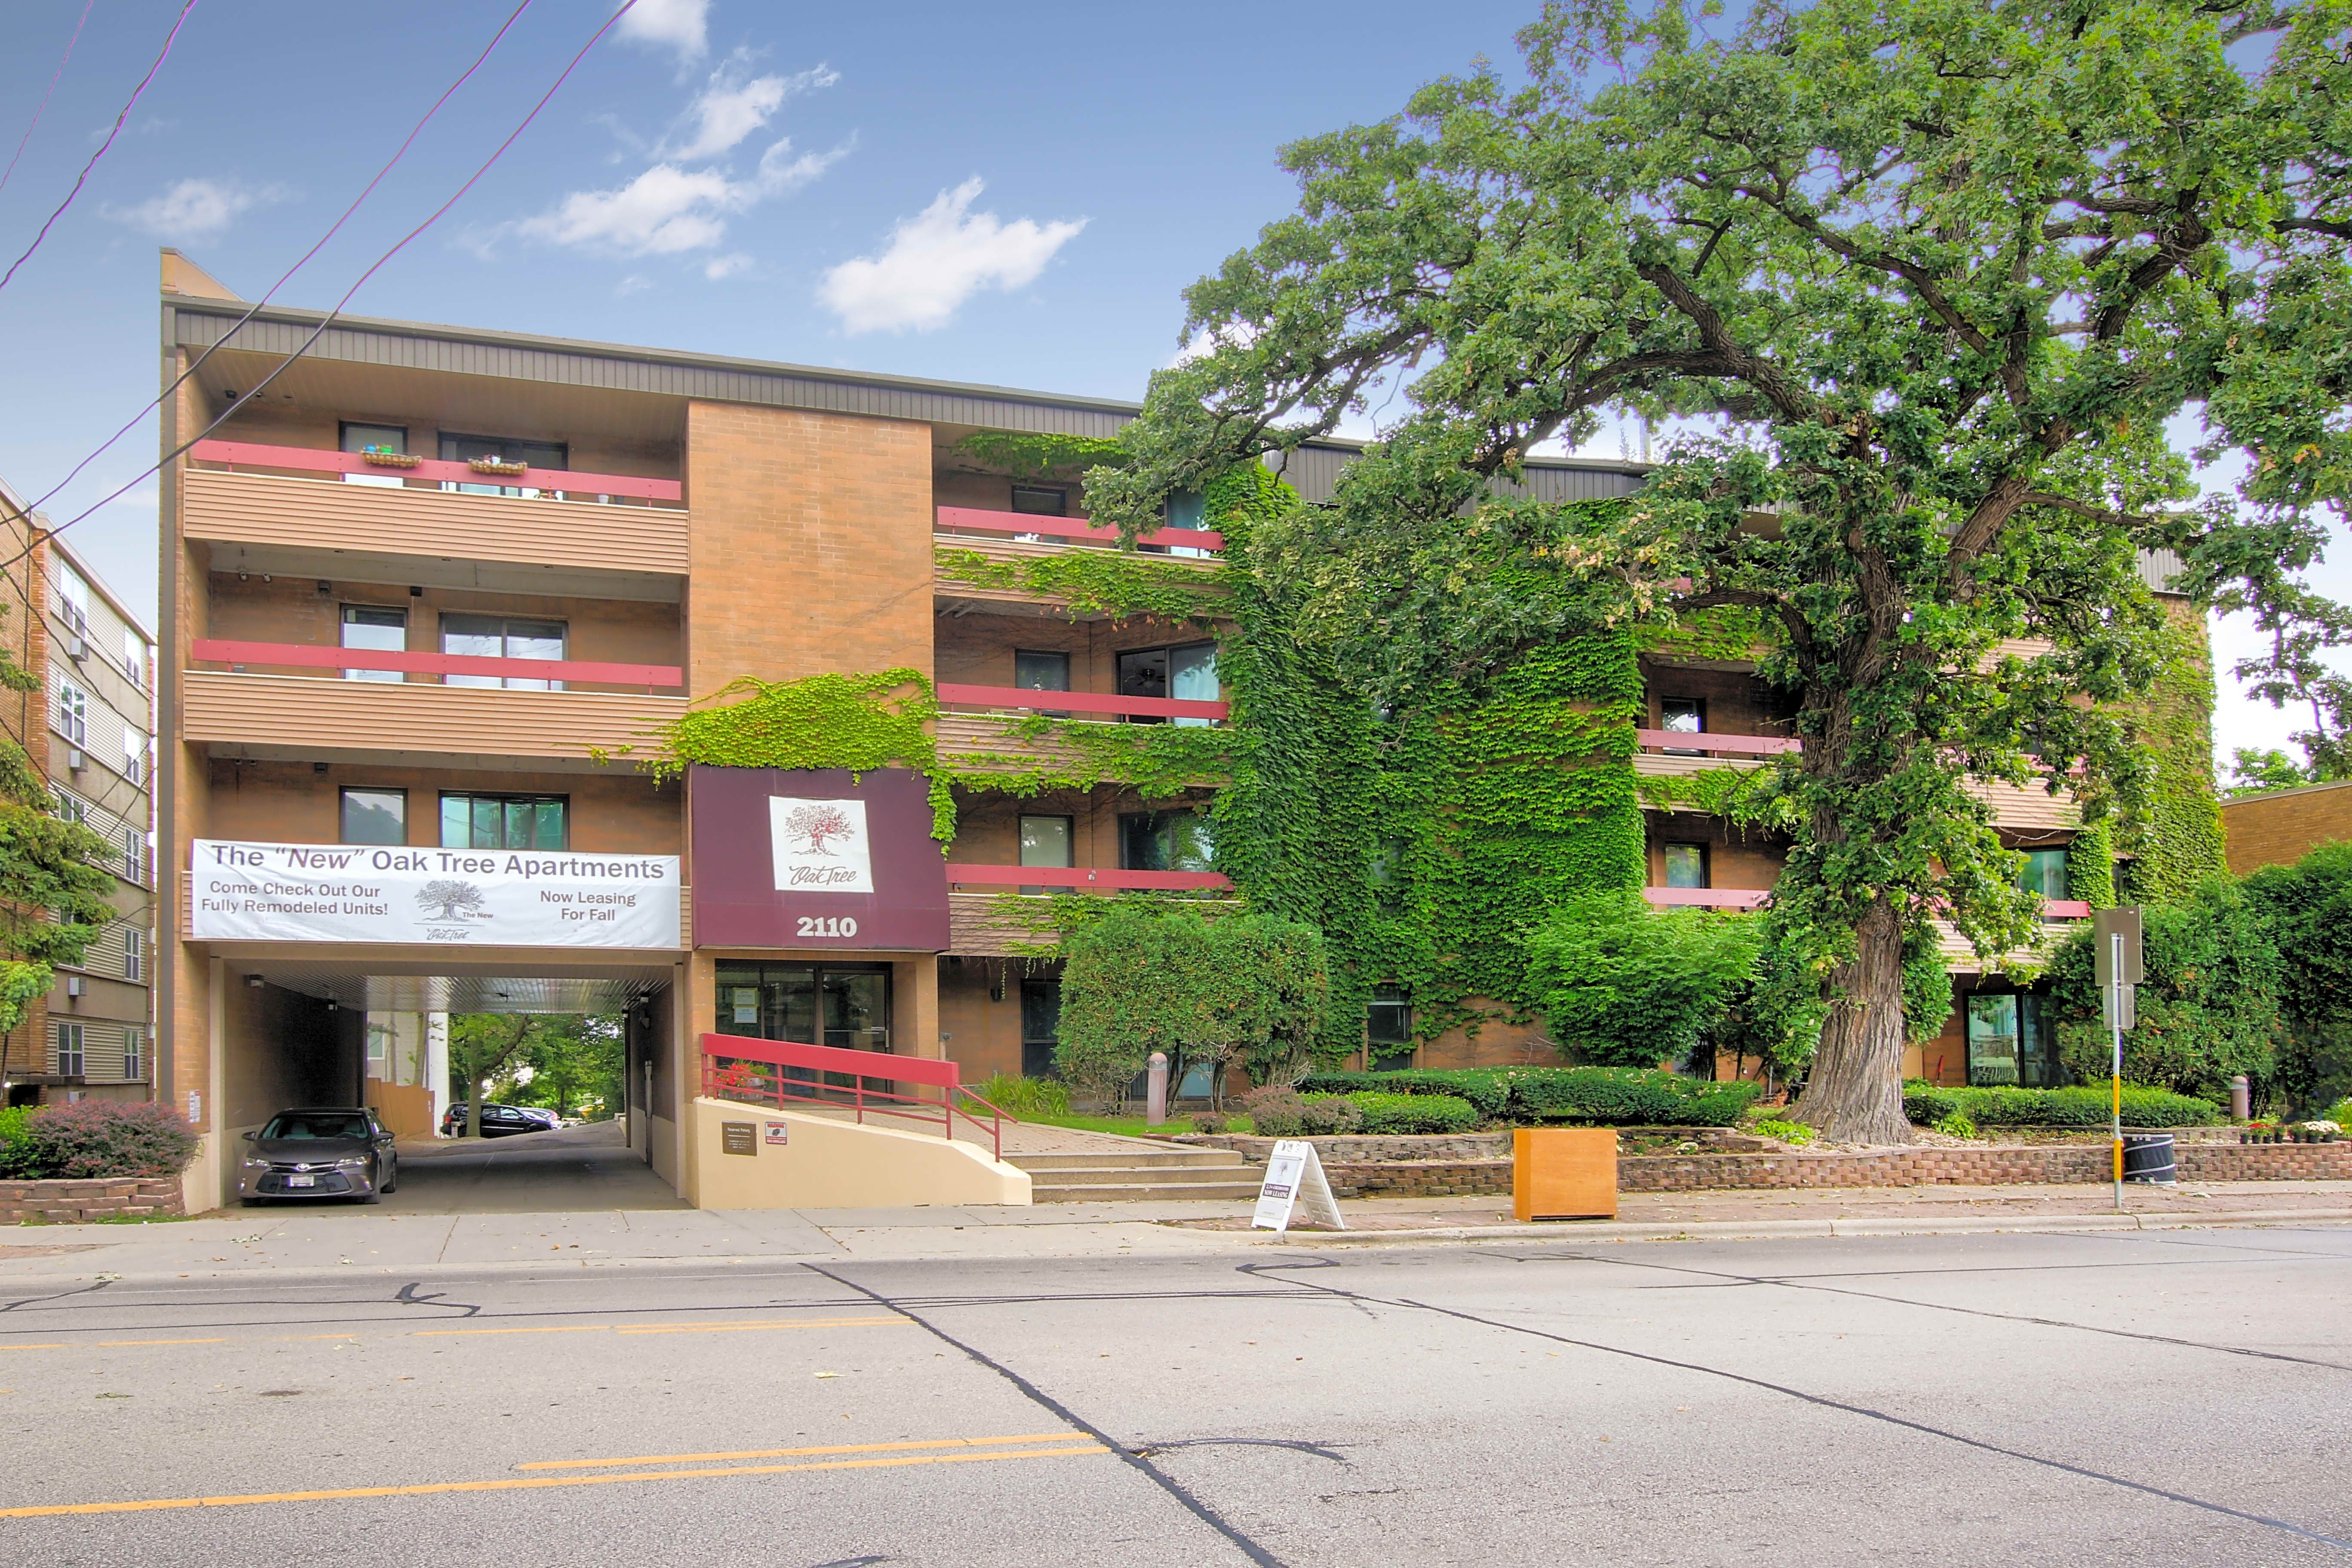 Apartments Near Edgewood Oak Tree Apartments for Edgewood College Students in Madison, WI